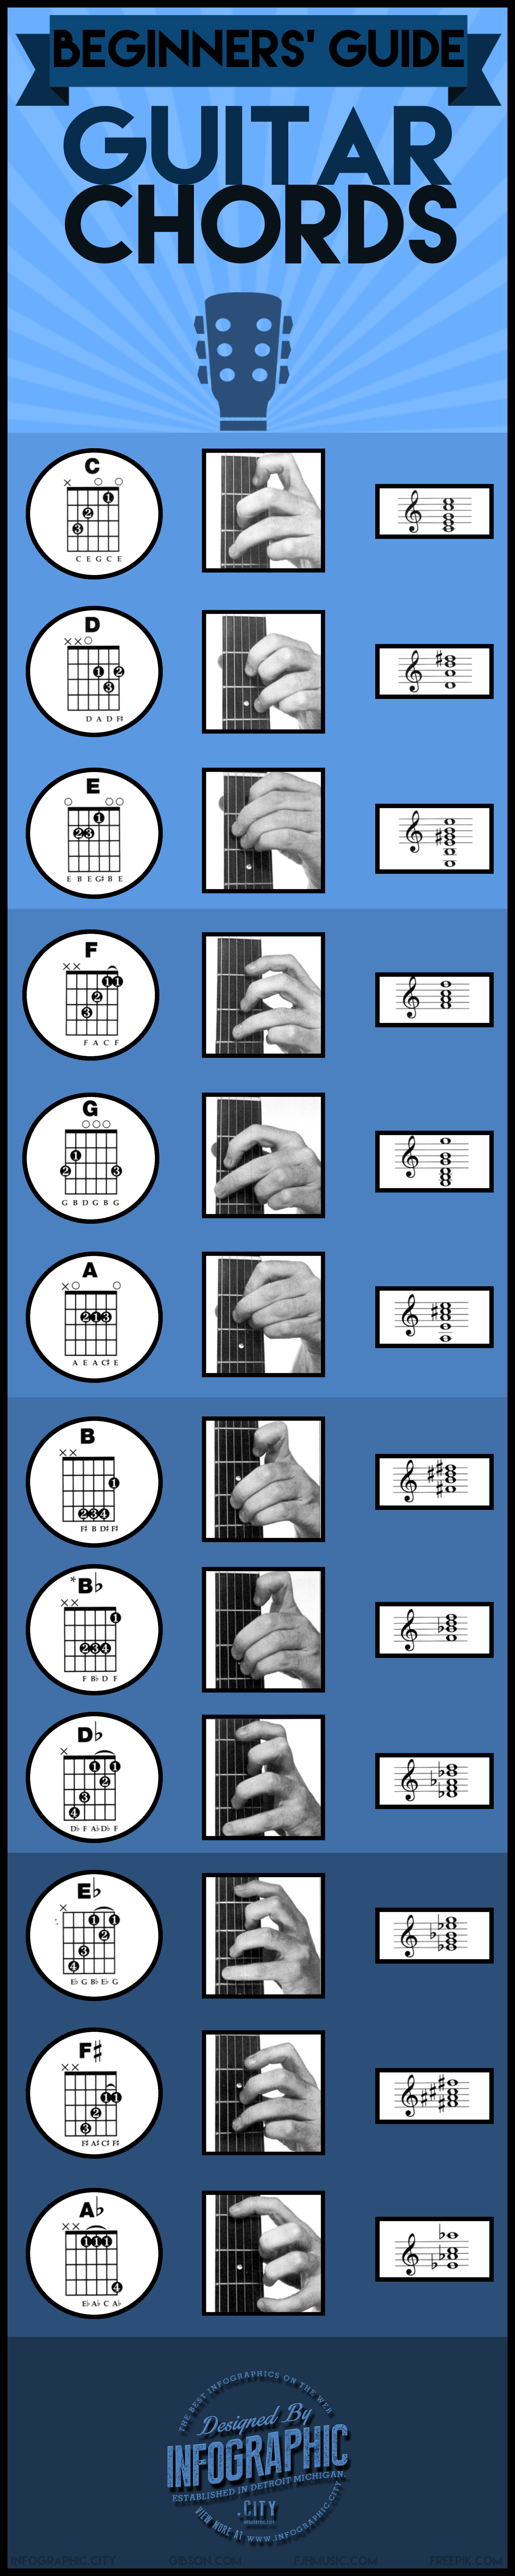 A Beginners Guide To Guitar Chords Infographic Into How Read Chord Diagram